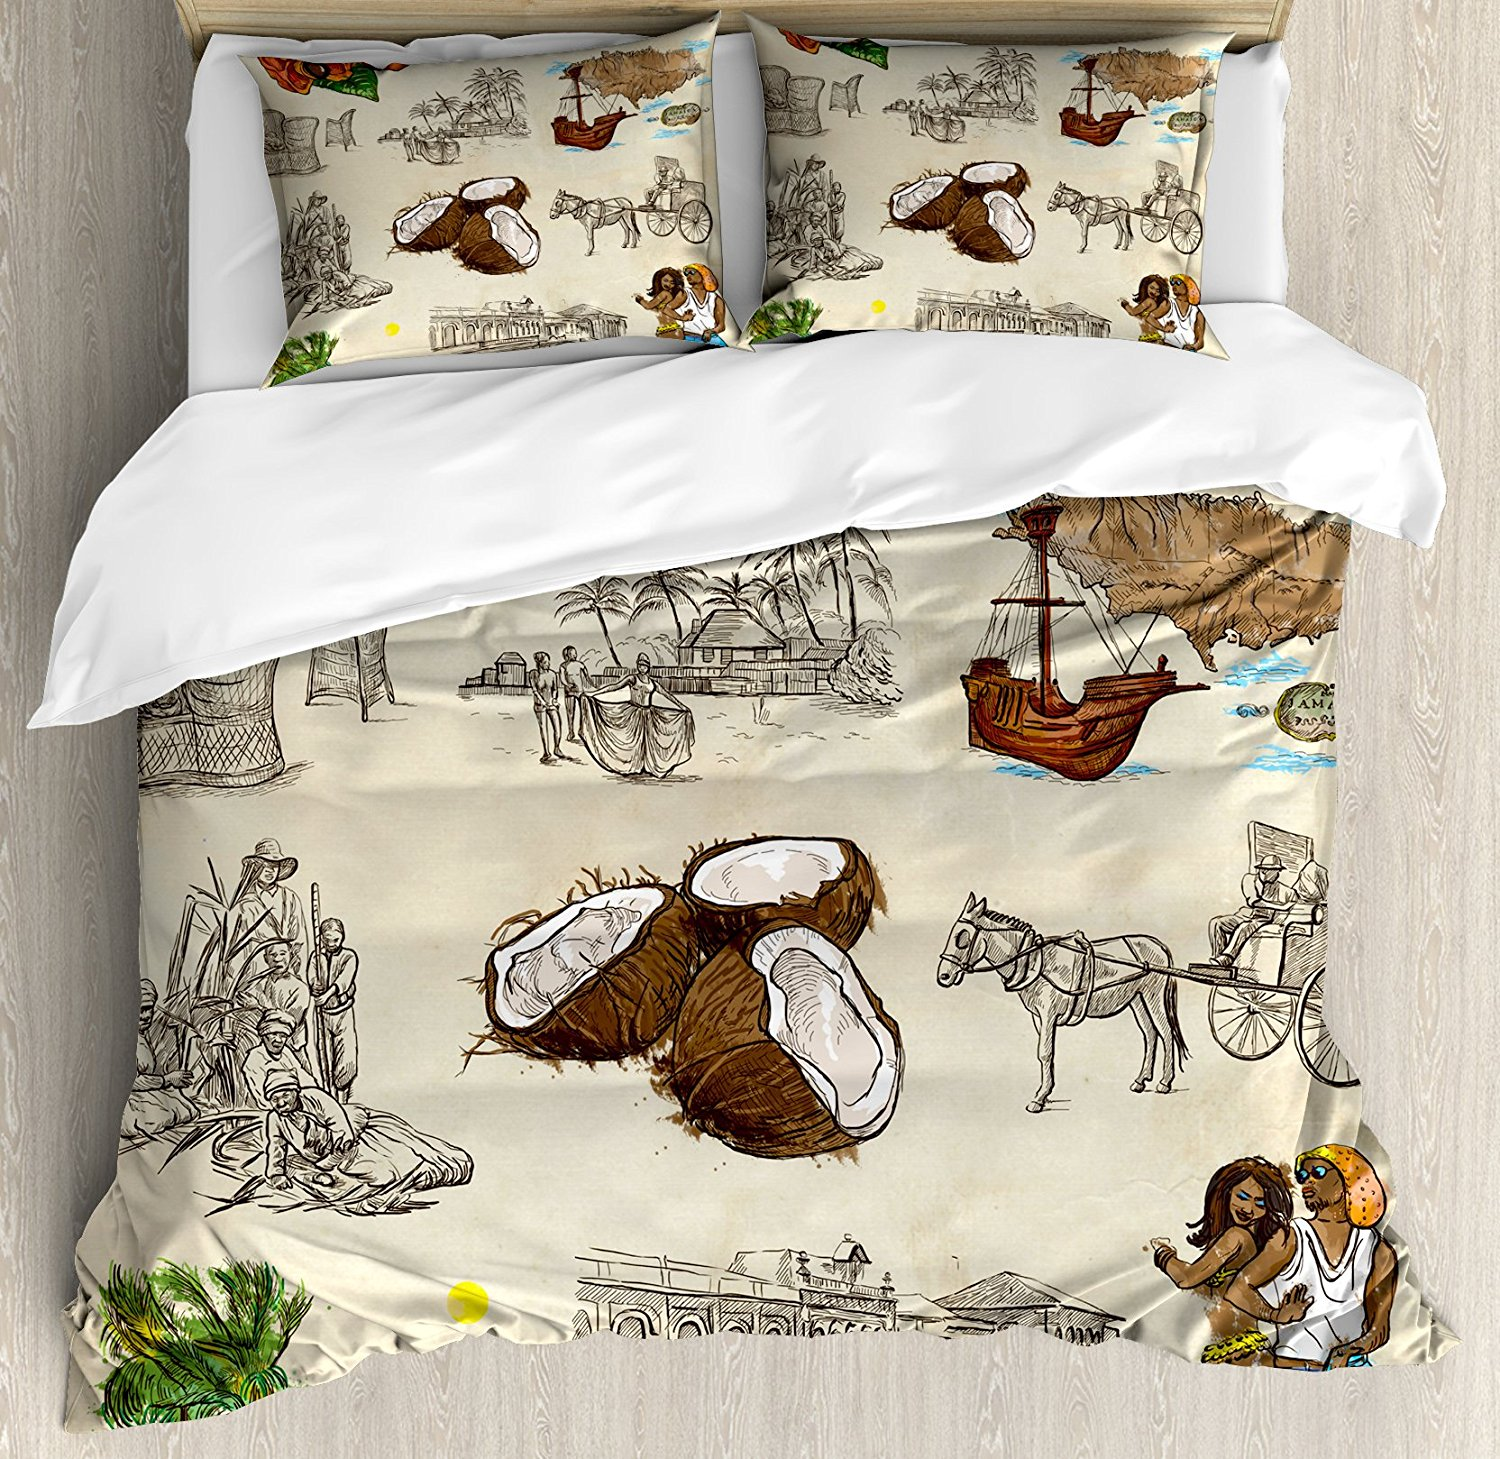 Jamaican Duvet Cover Set Hand Drawn Illustrations of Elements from Caribbean Cultures Old Paper Effect Decor 4pcs Bedding Set